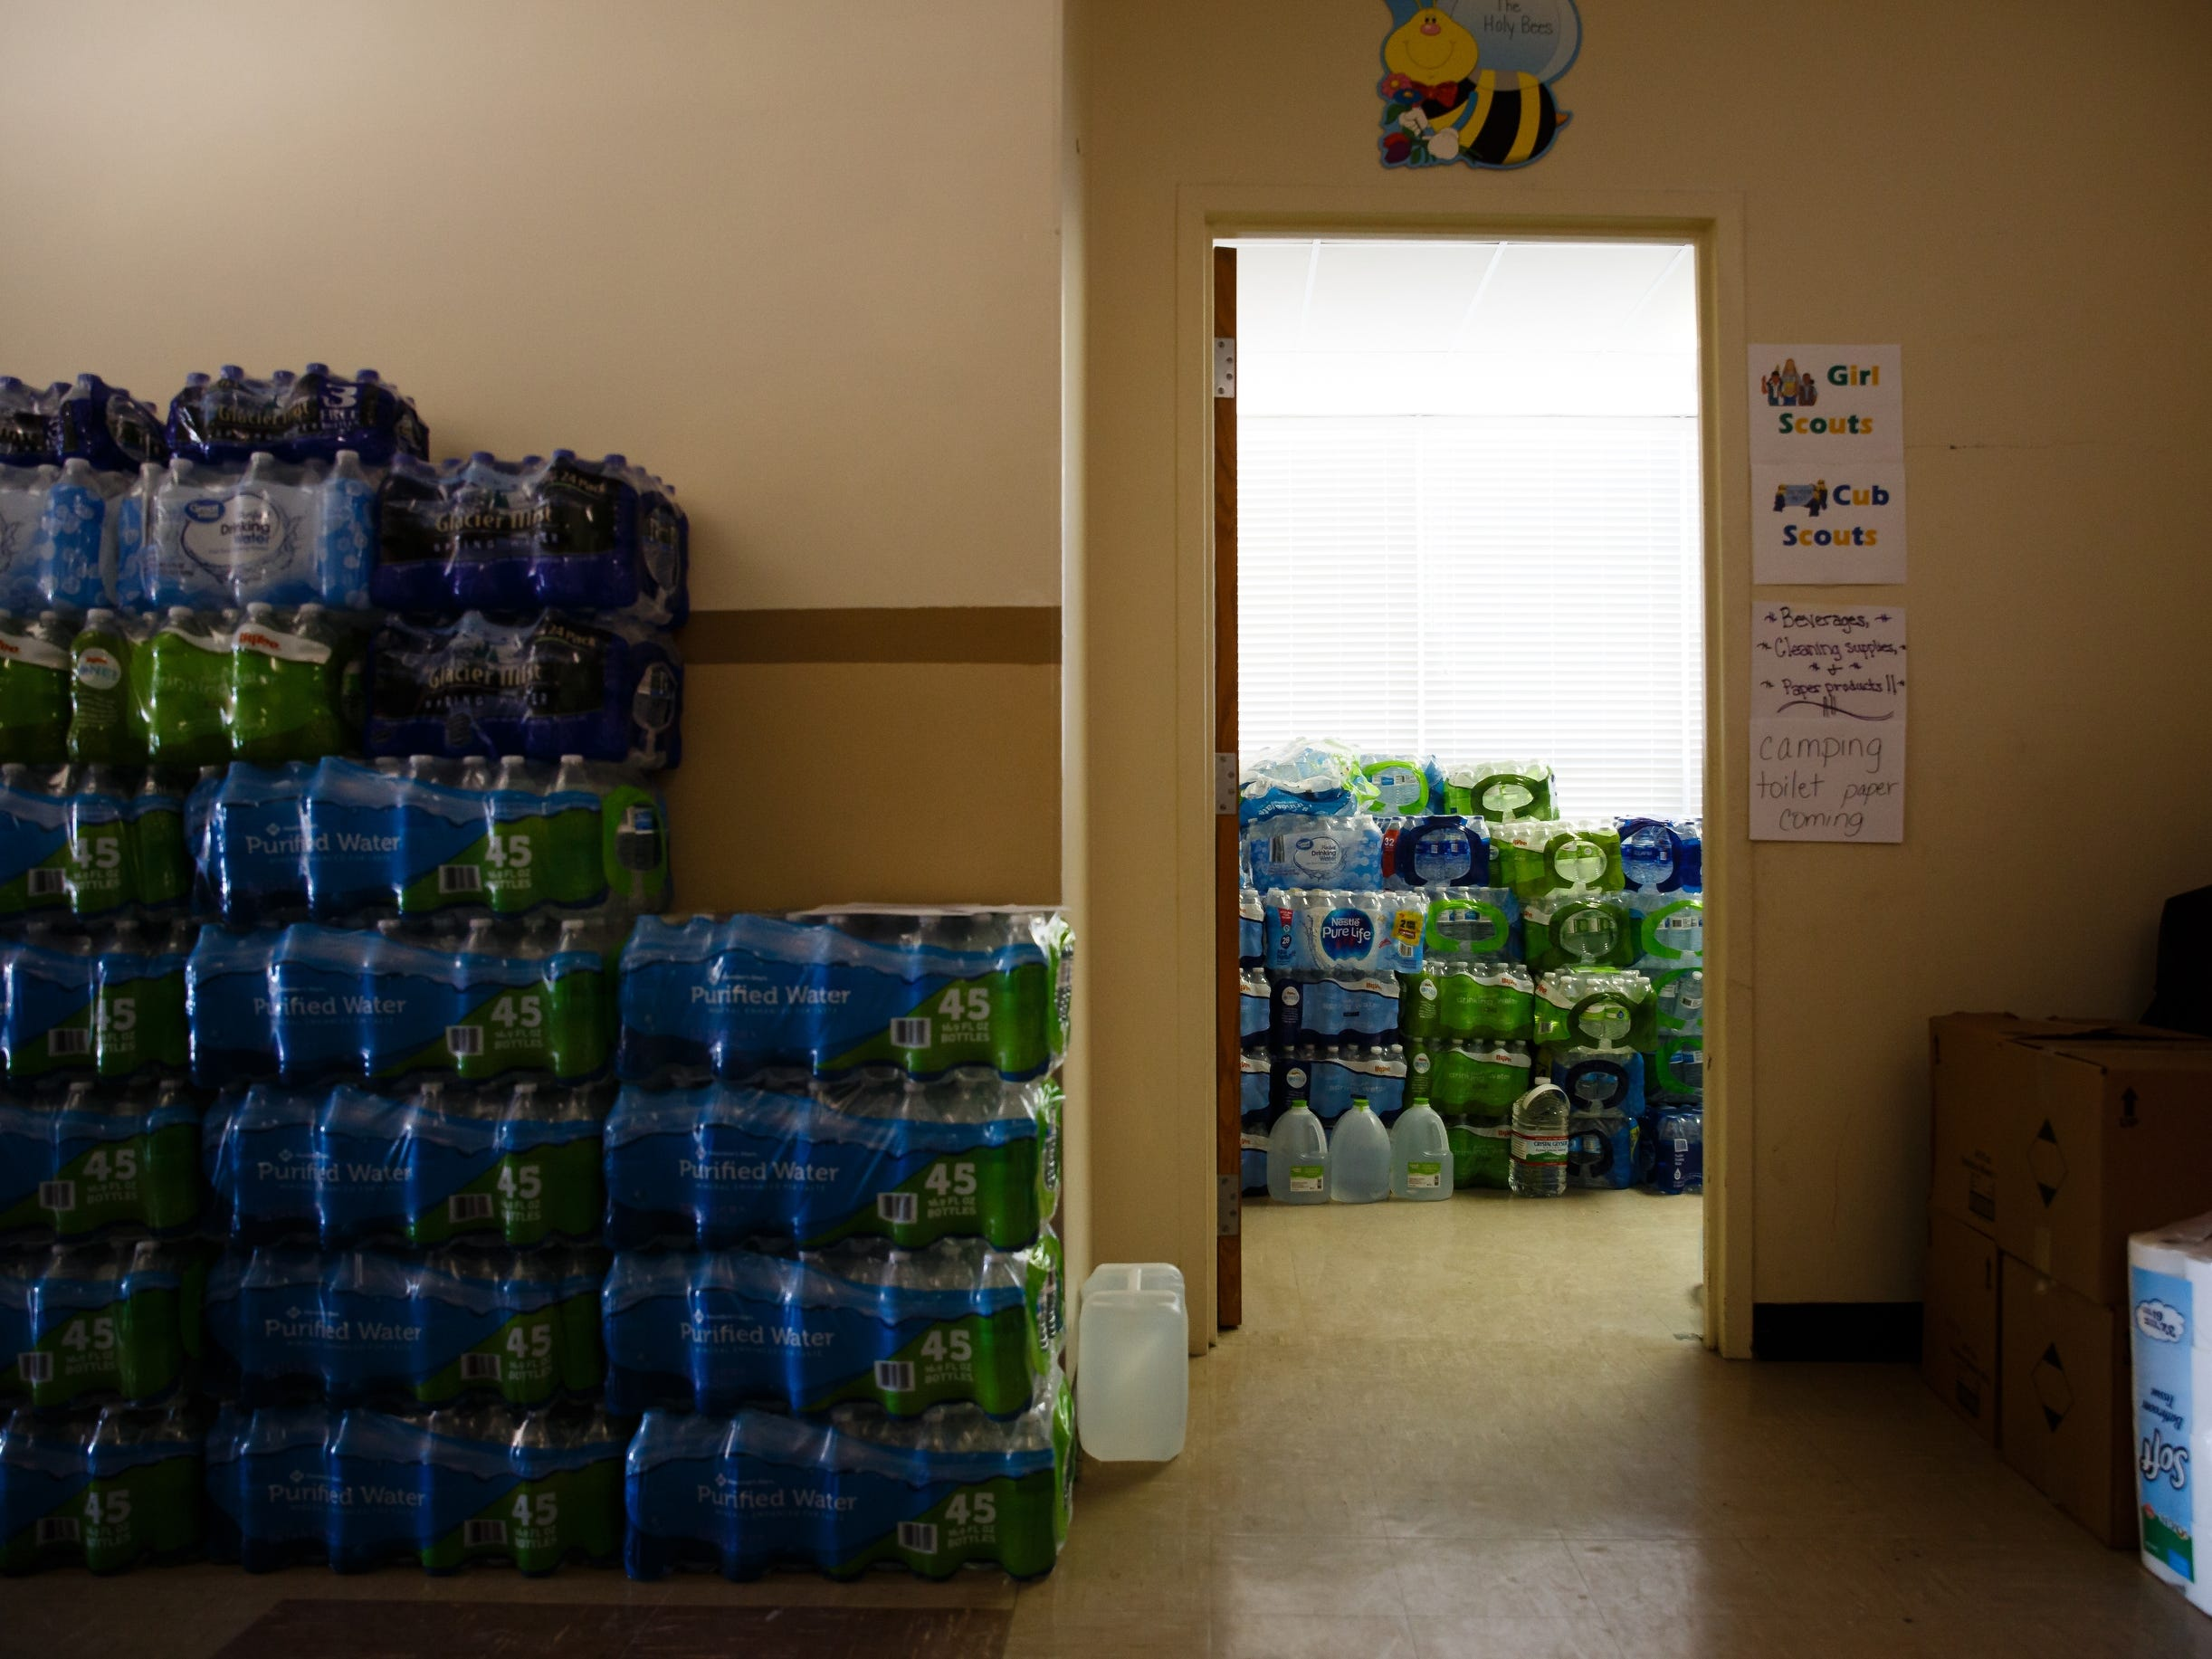 Bottled water is piled high in the basement of the Grace United Methodist Church for residents who have been displaced by the rising flood waters along the Missouri River on Wednesday, March 20, 2019, in Glenwood.